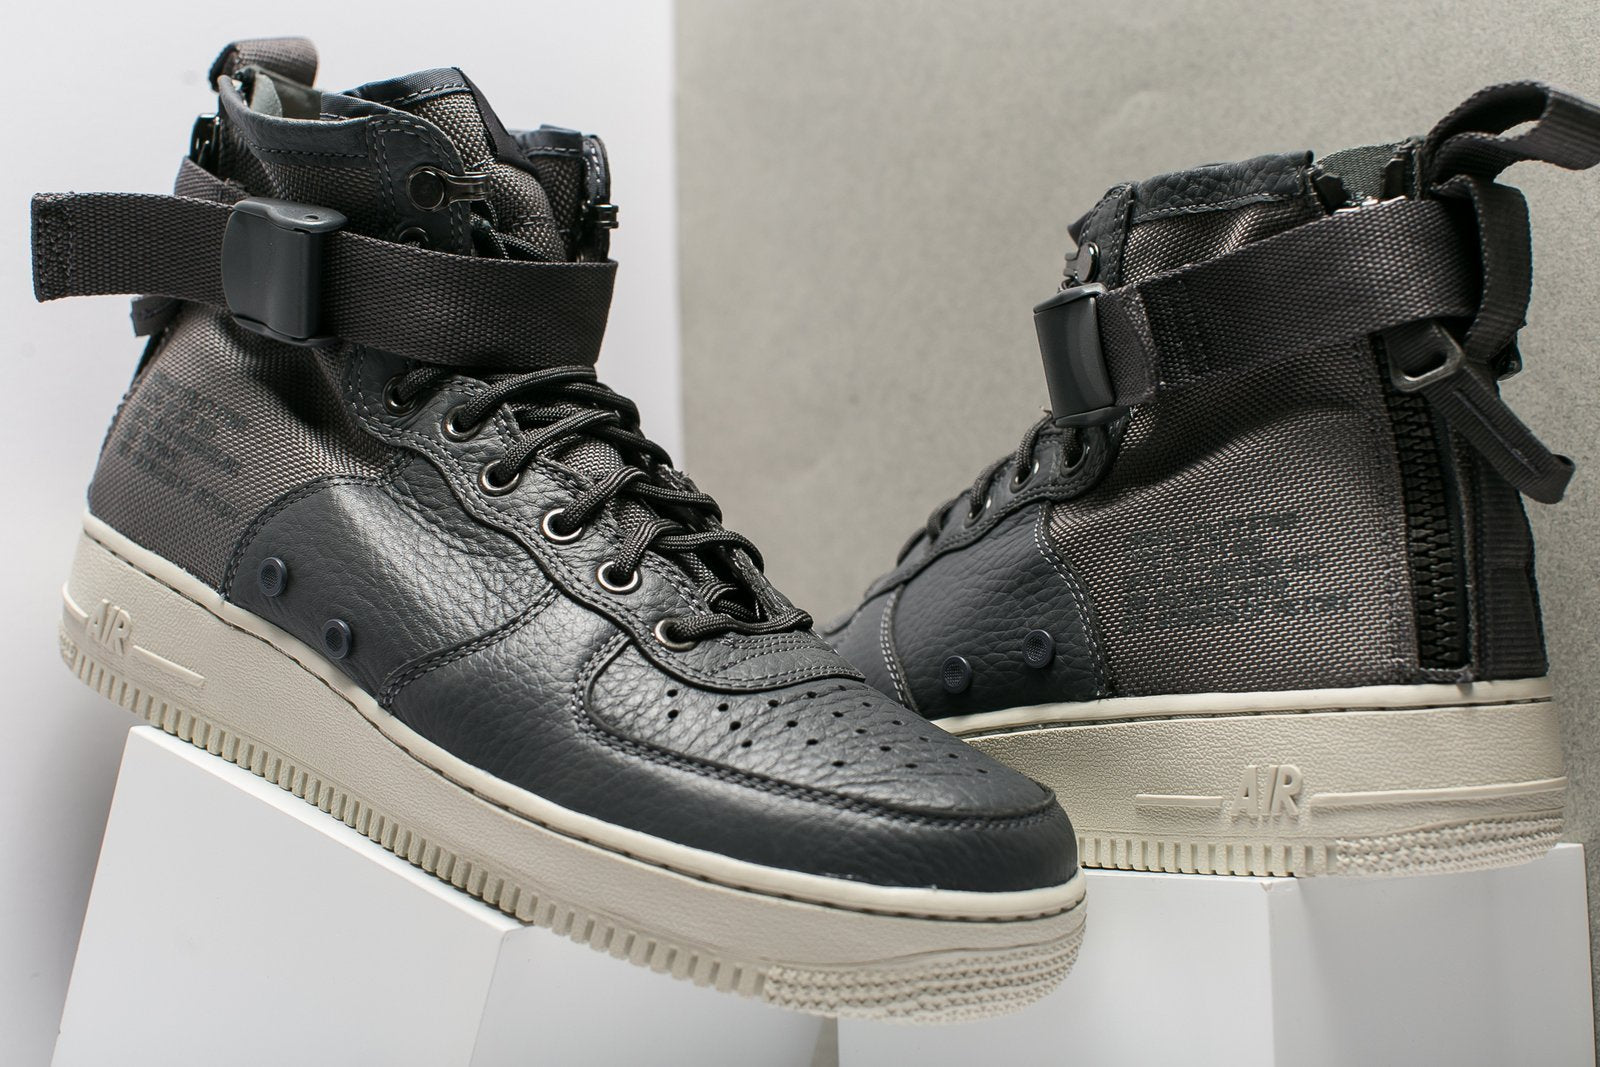 NIKE AIR FORCE 1 MID (GRADE SCHOOL BOYS) Oneness Boutique